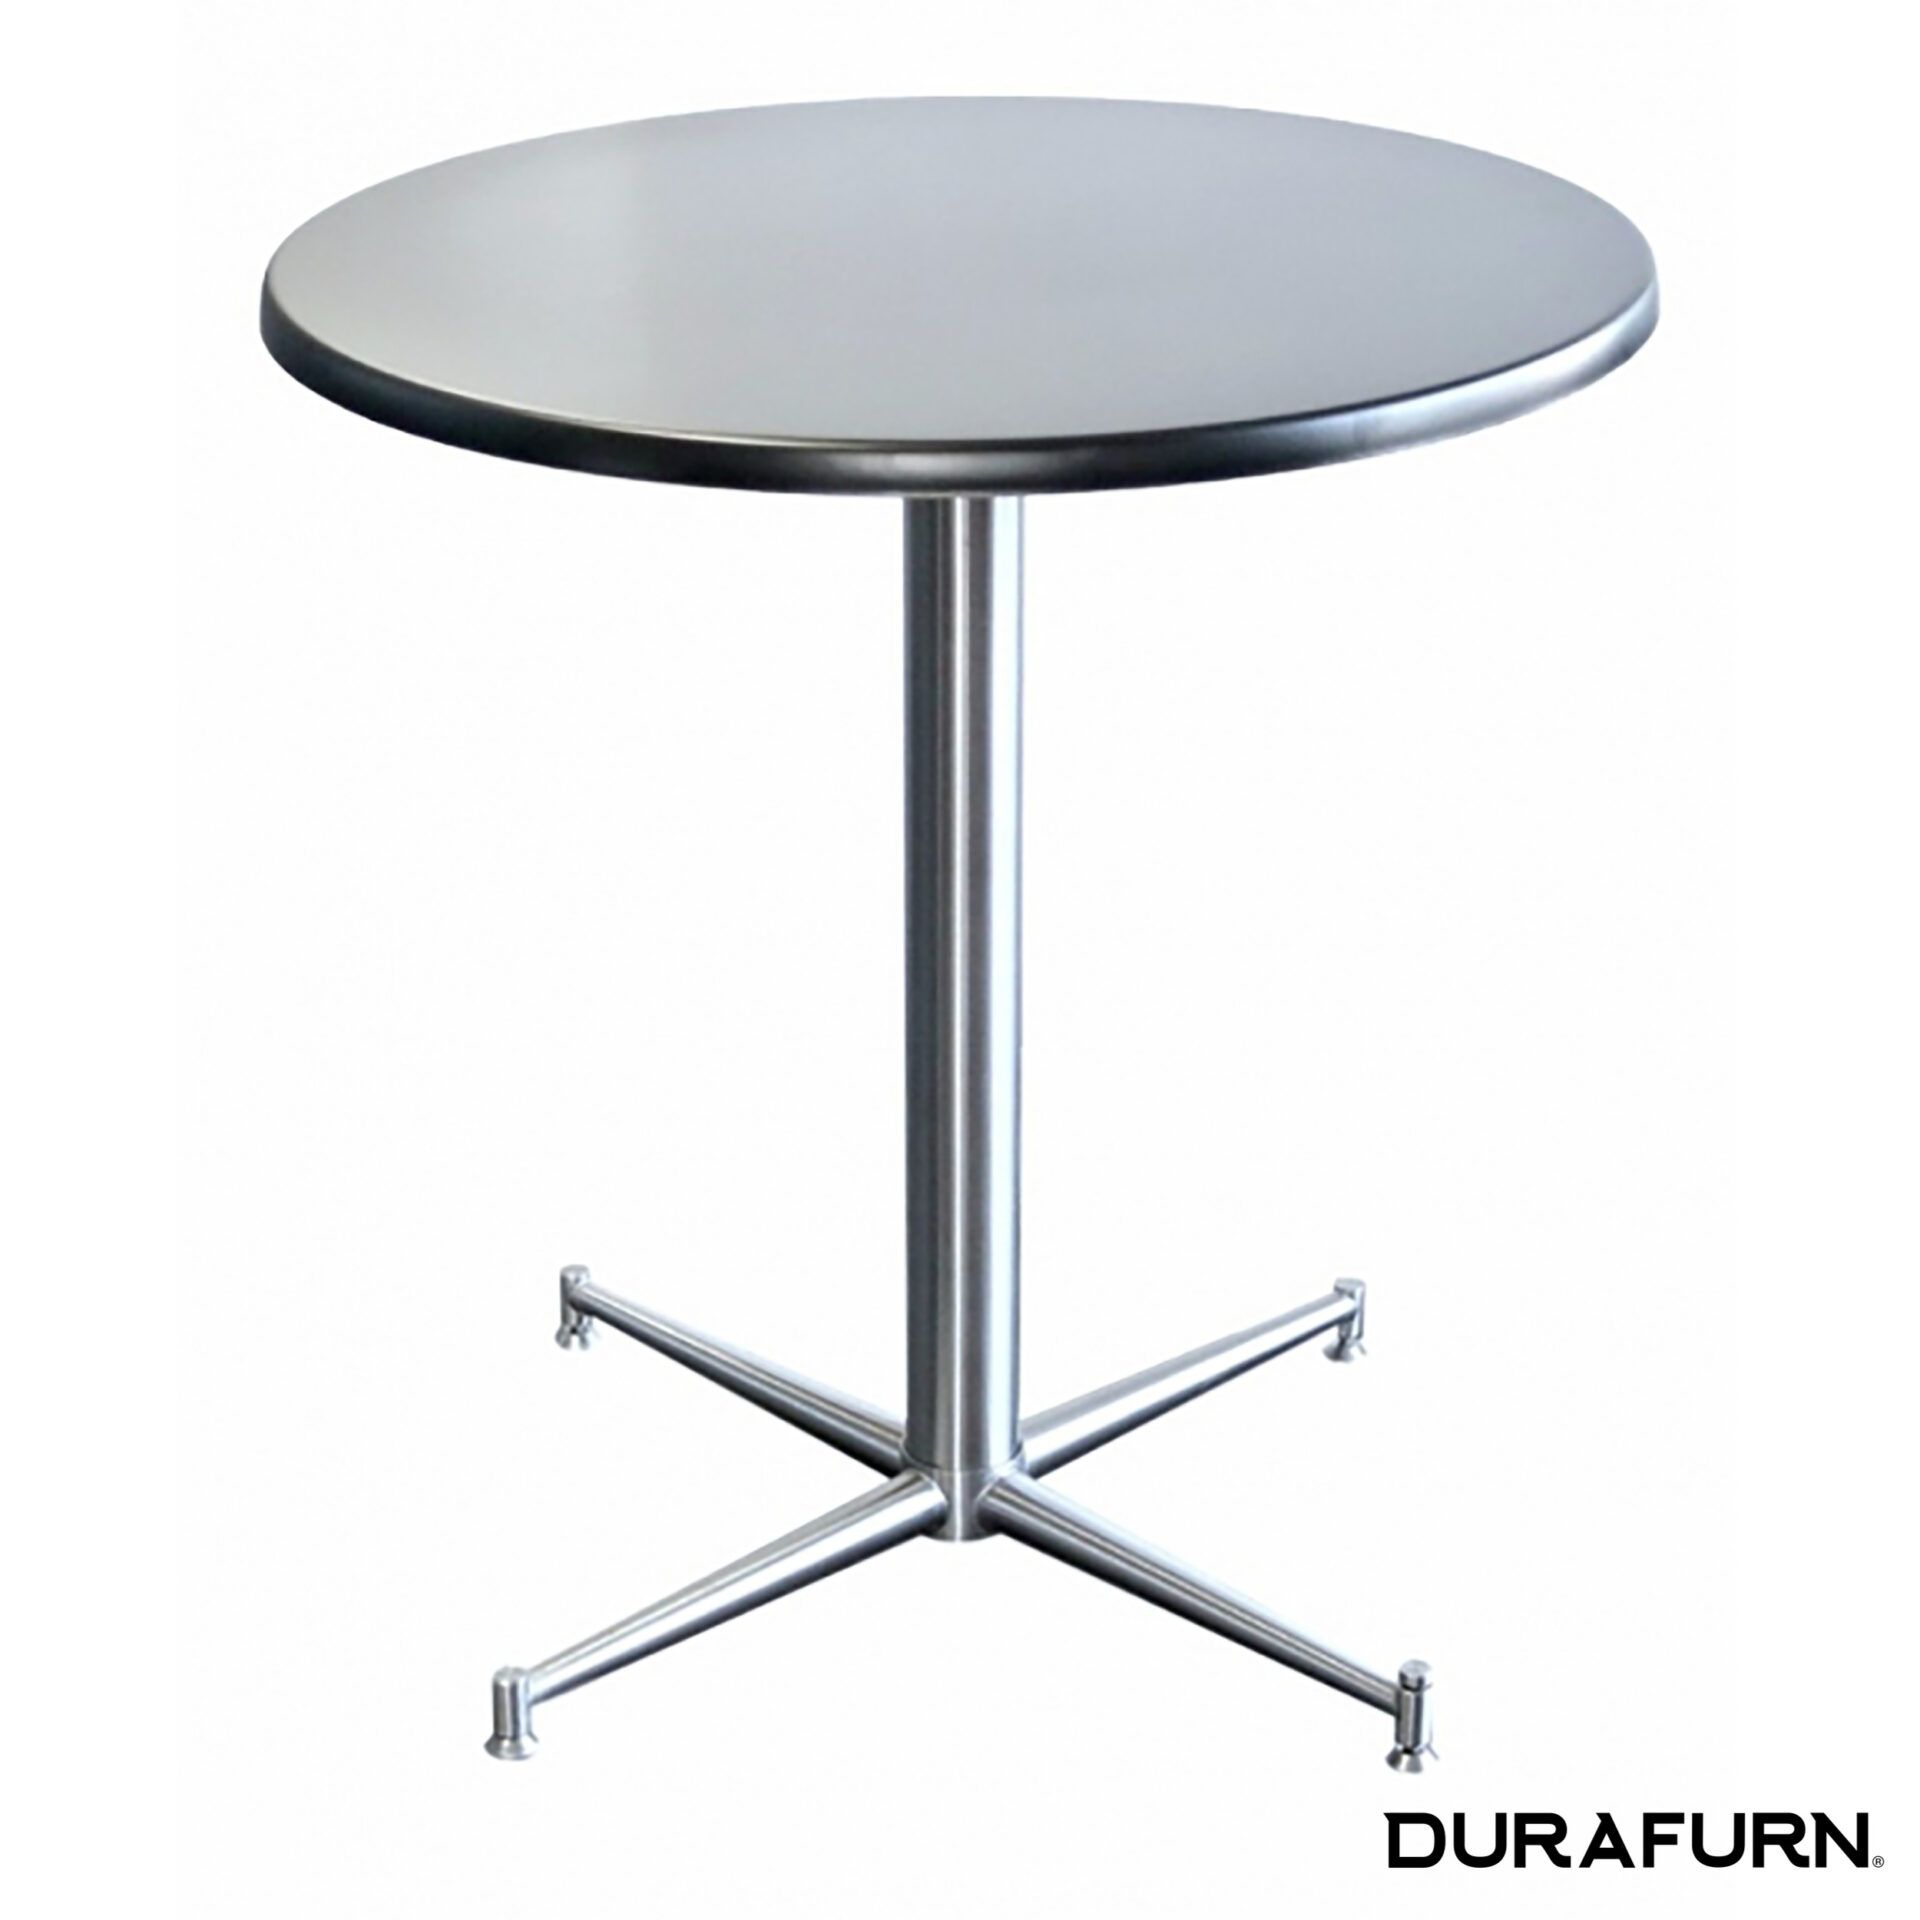 Stirling Table Base Round Table THp3Ez